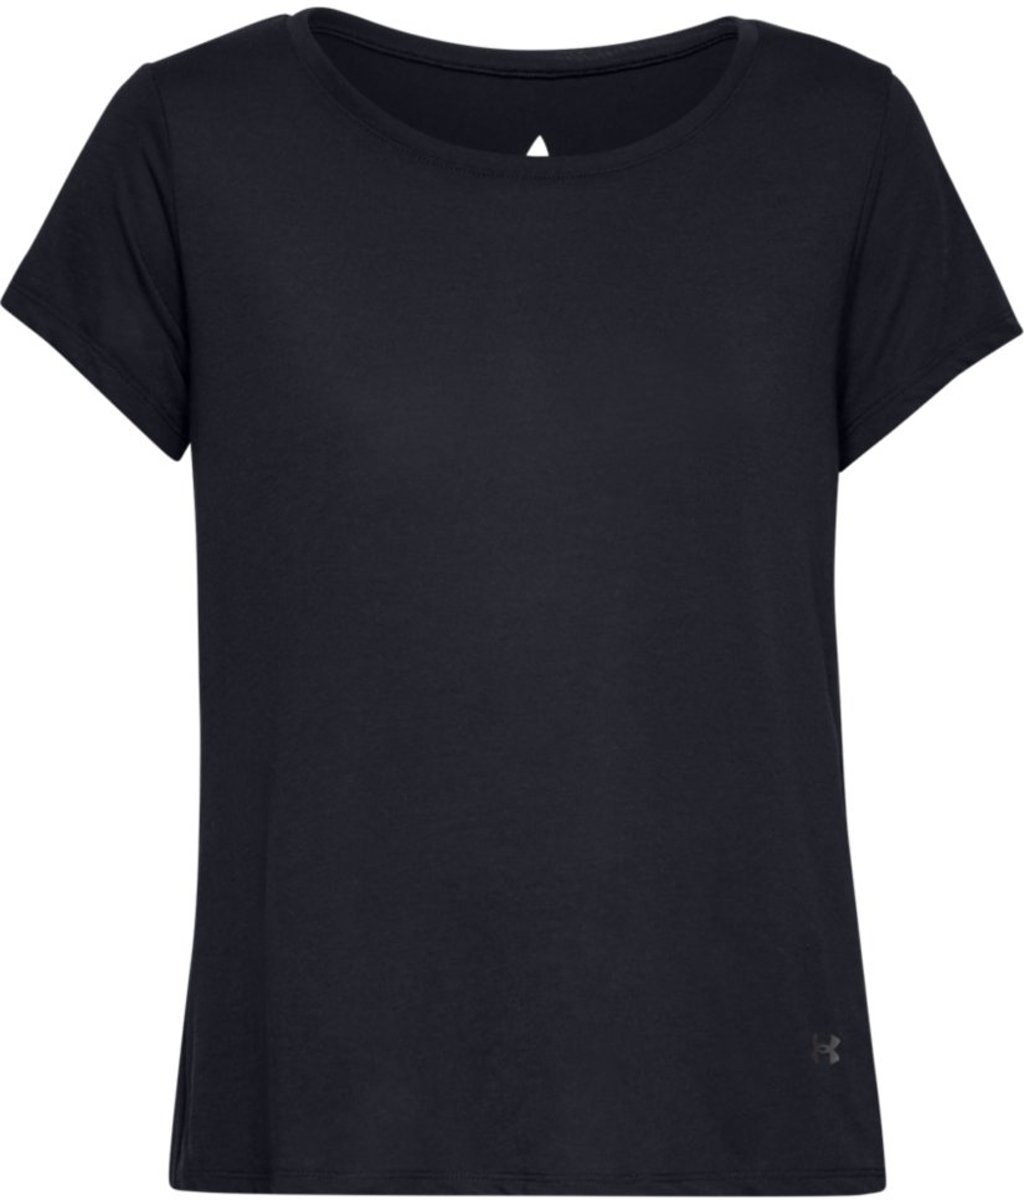 Under Armour Whisperlight Foldover Sportshirt Dames - Zwart - Maat M kopen